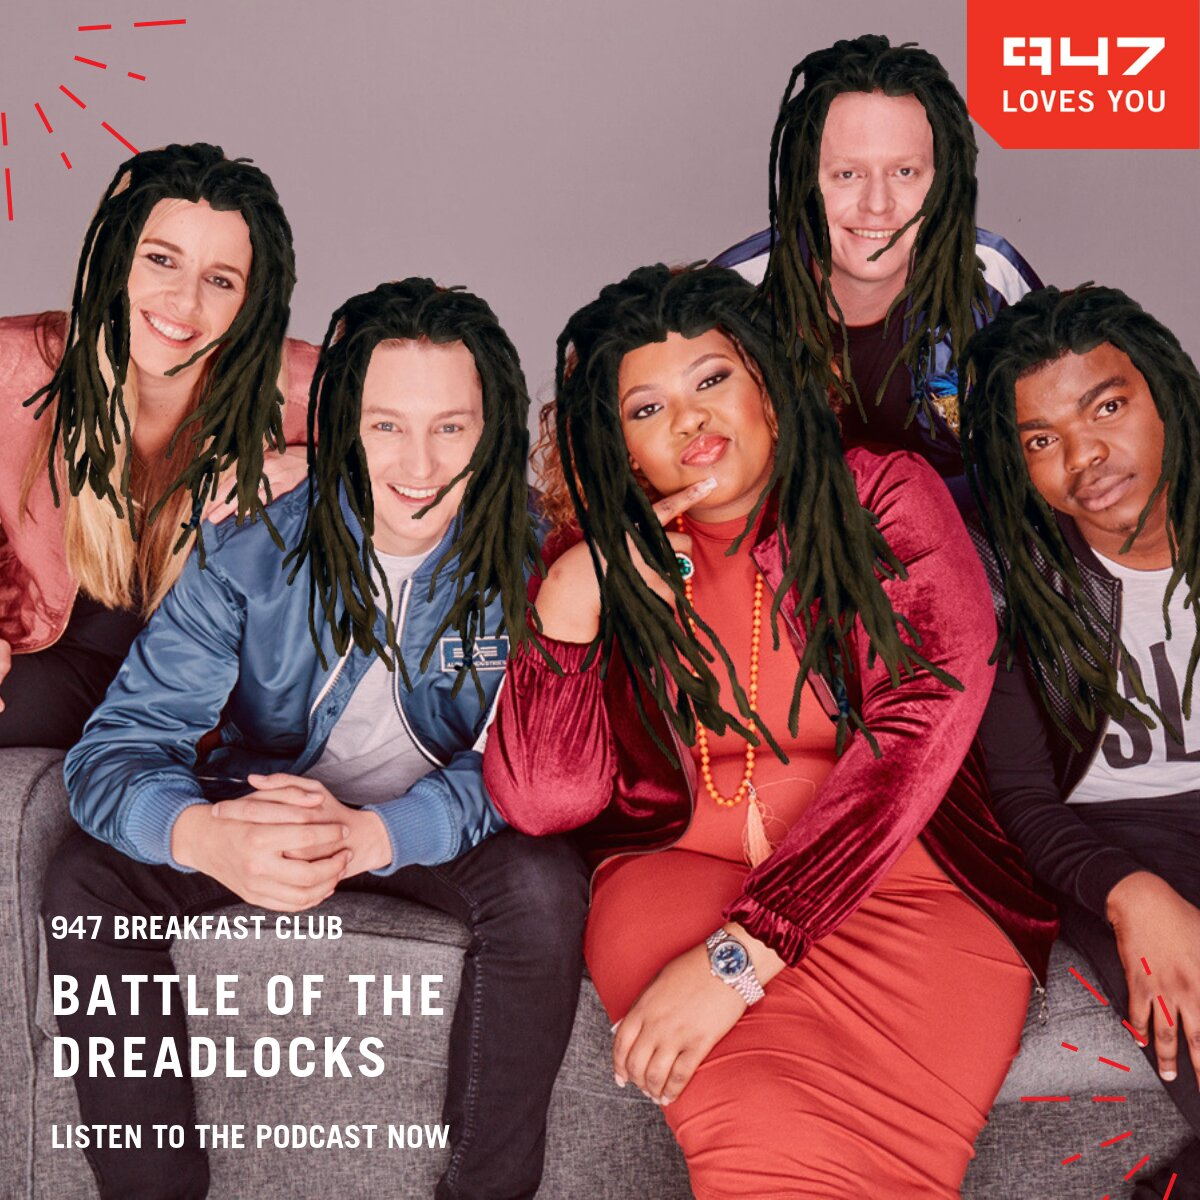 The Battle of the Dreadlocks! The most ridiculous story you've ever heard!